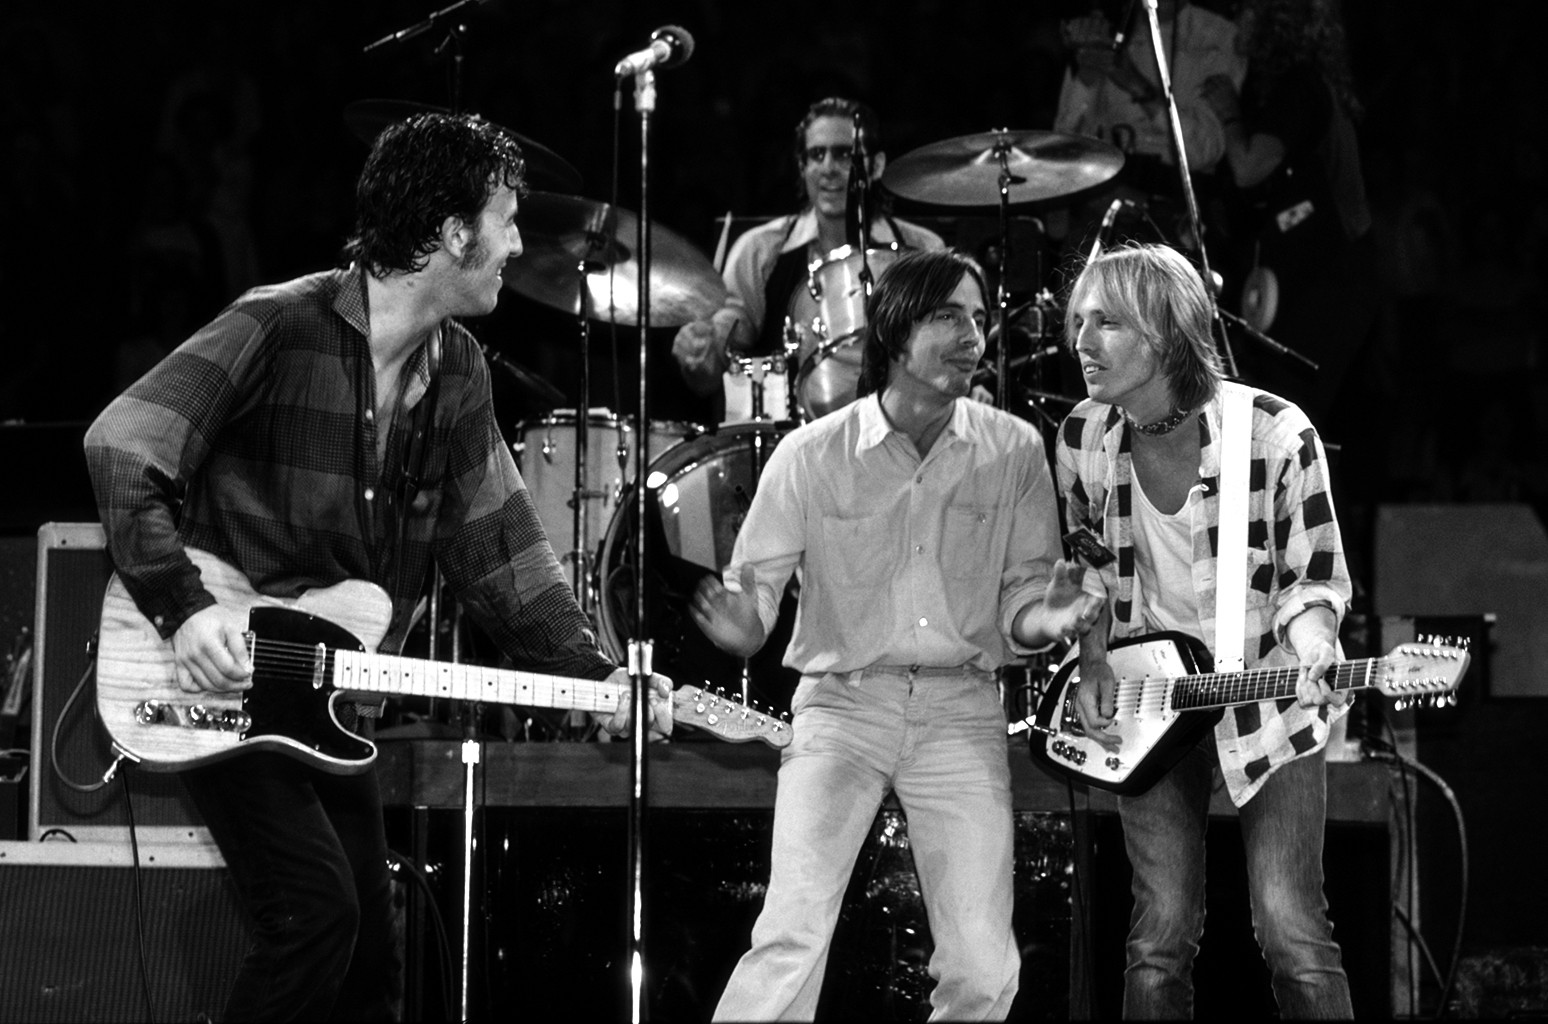 Bruce Springsteen, Jackson Browne, and Tom Petty